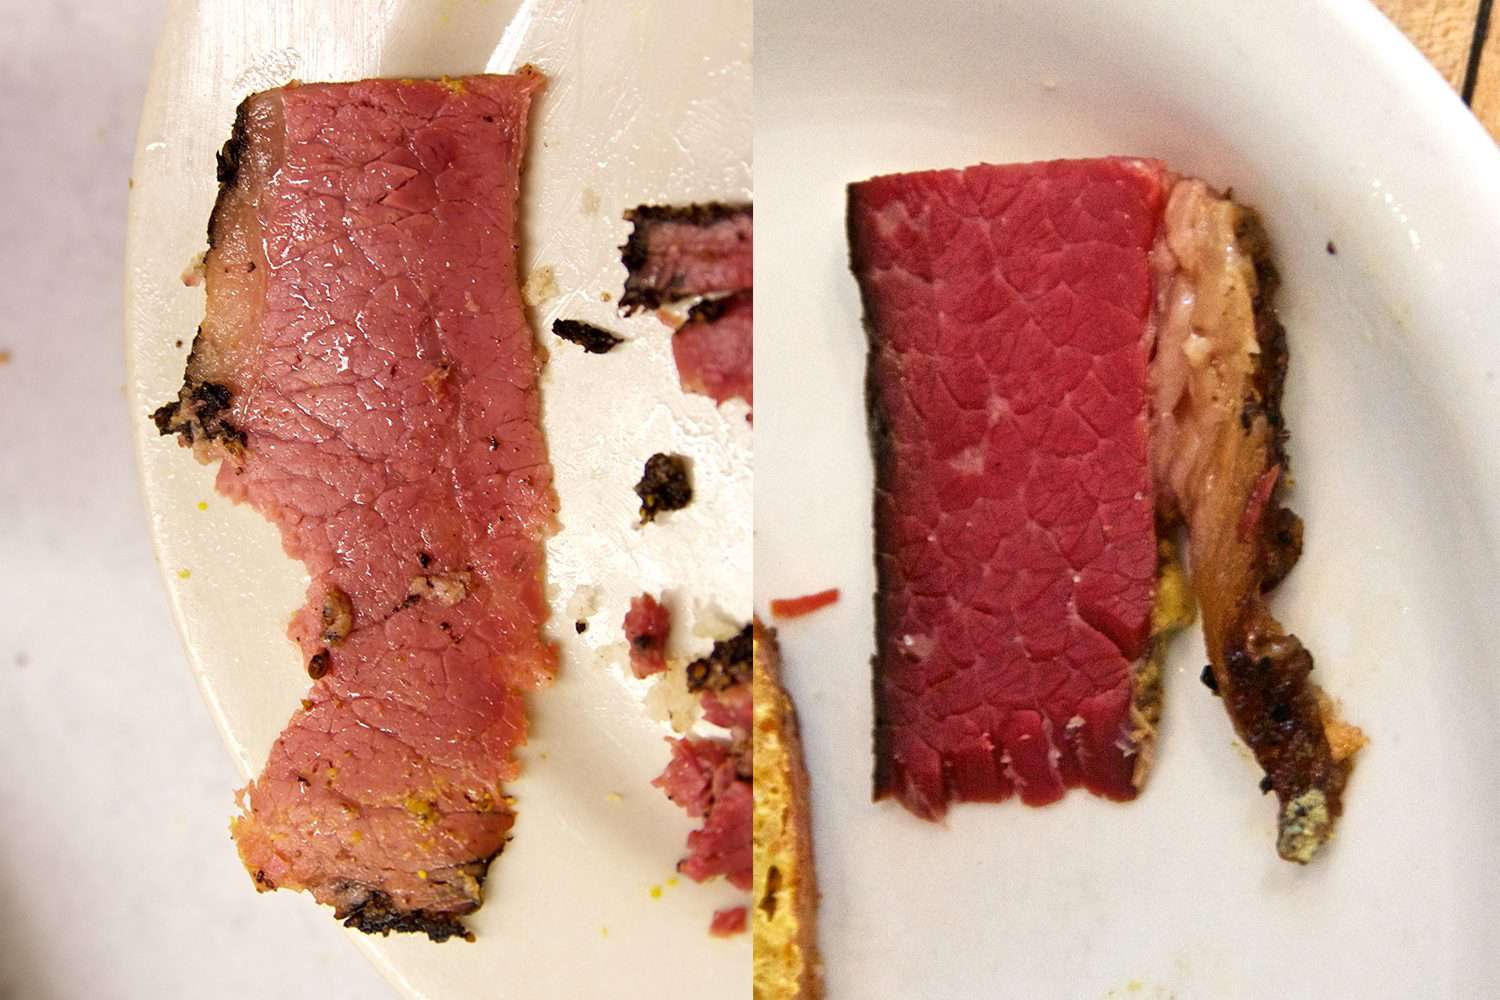 Split image showing both pastrami and smoked meat on white serving plates.